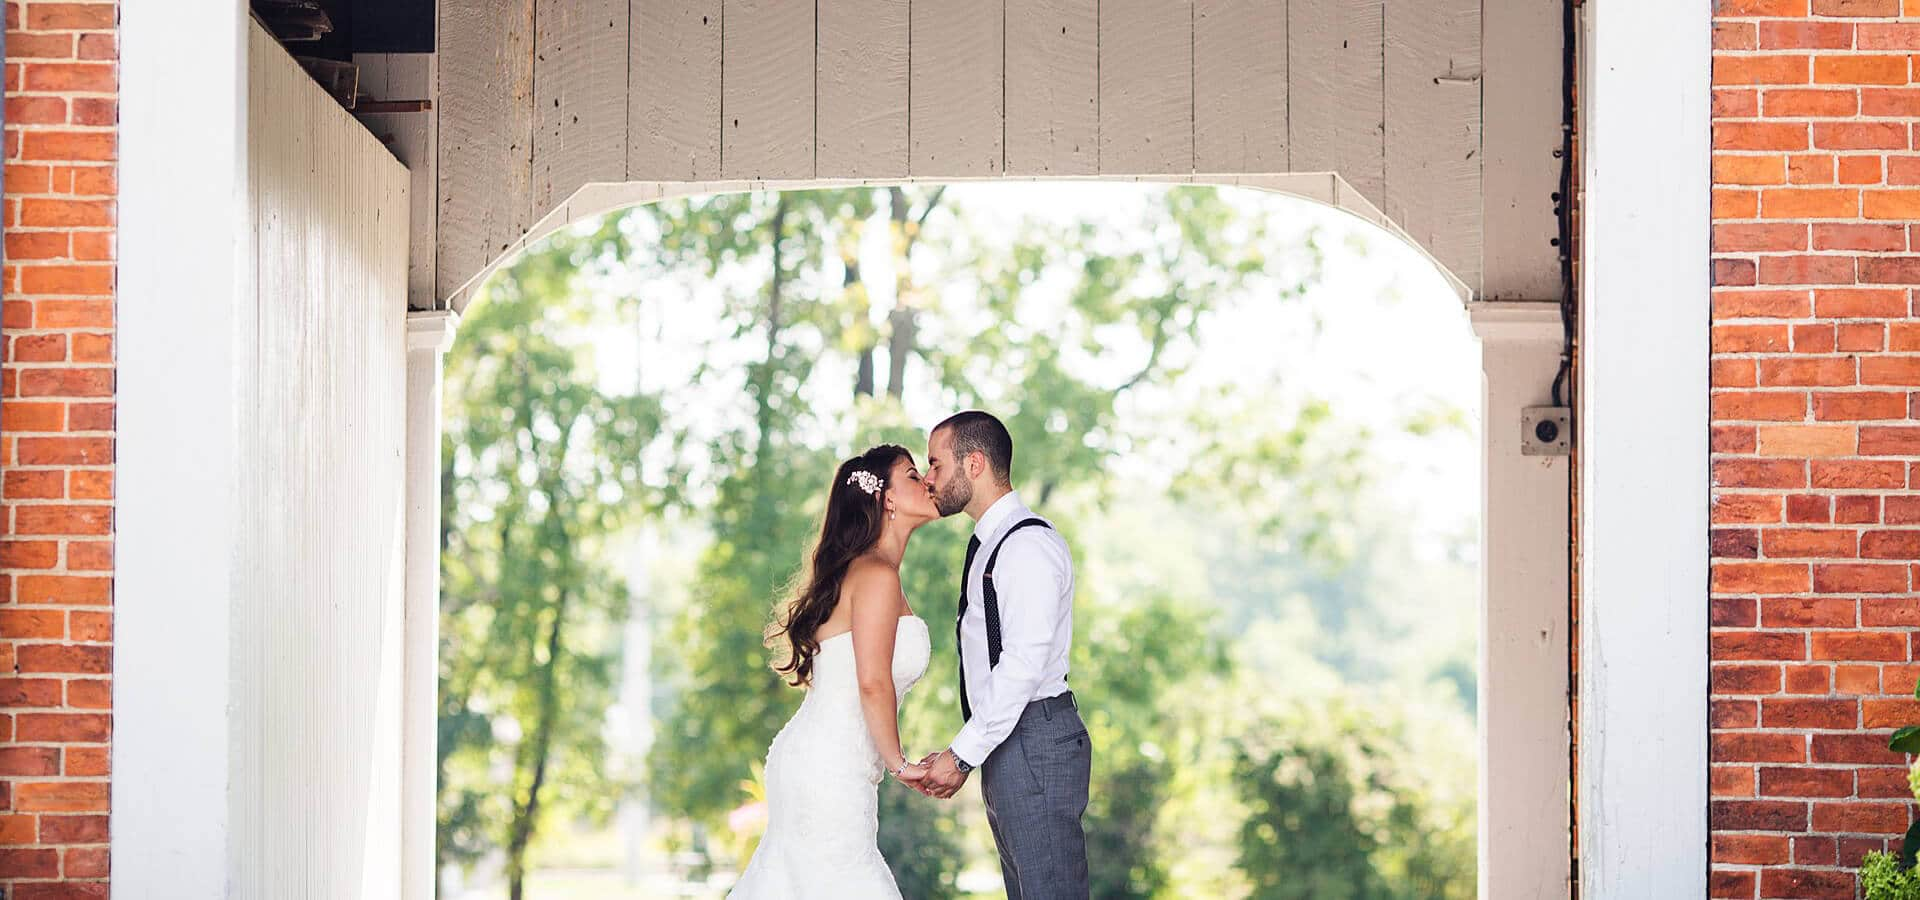 Hero image for A Romantic Wedding at Ruthven Park!